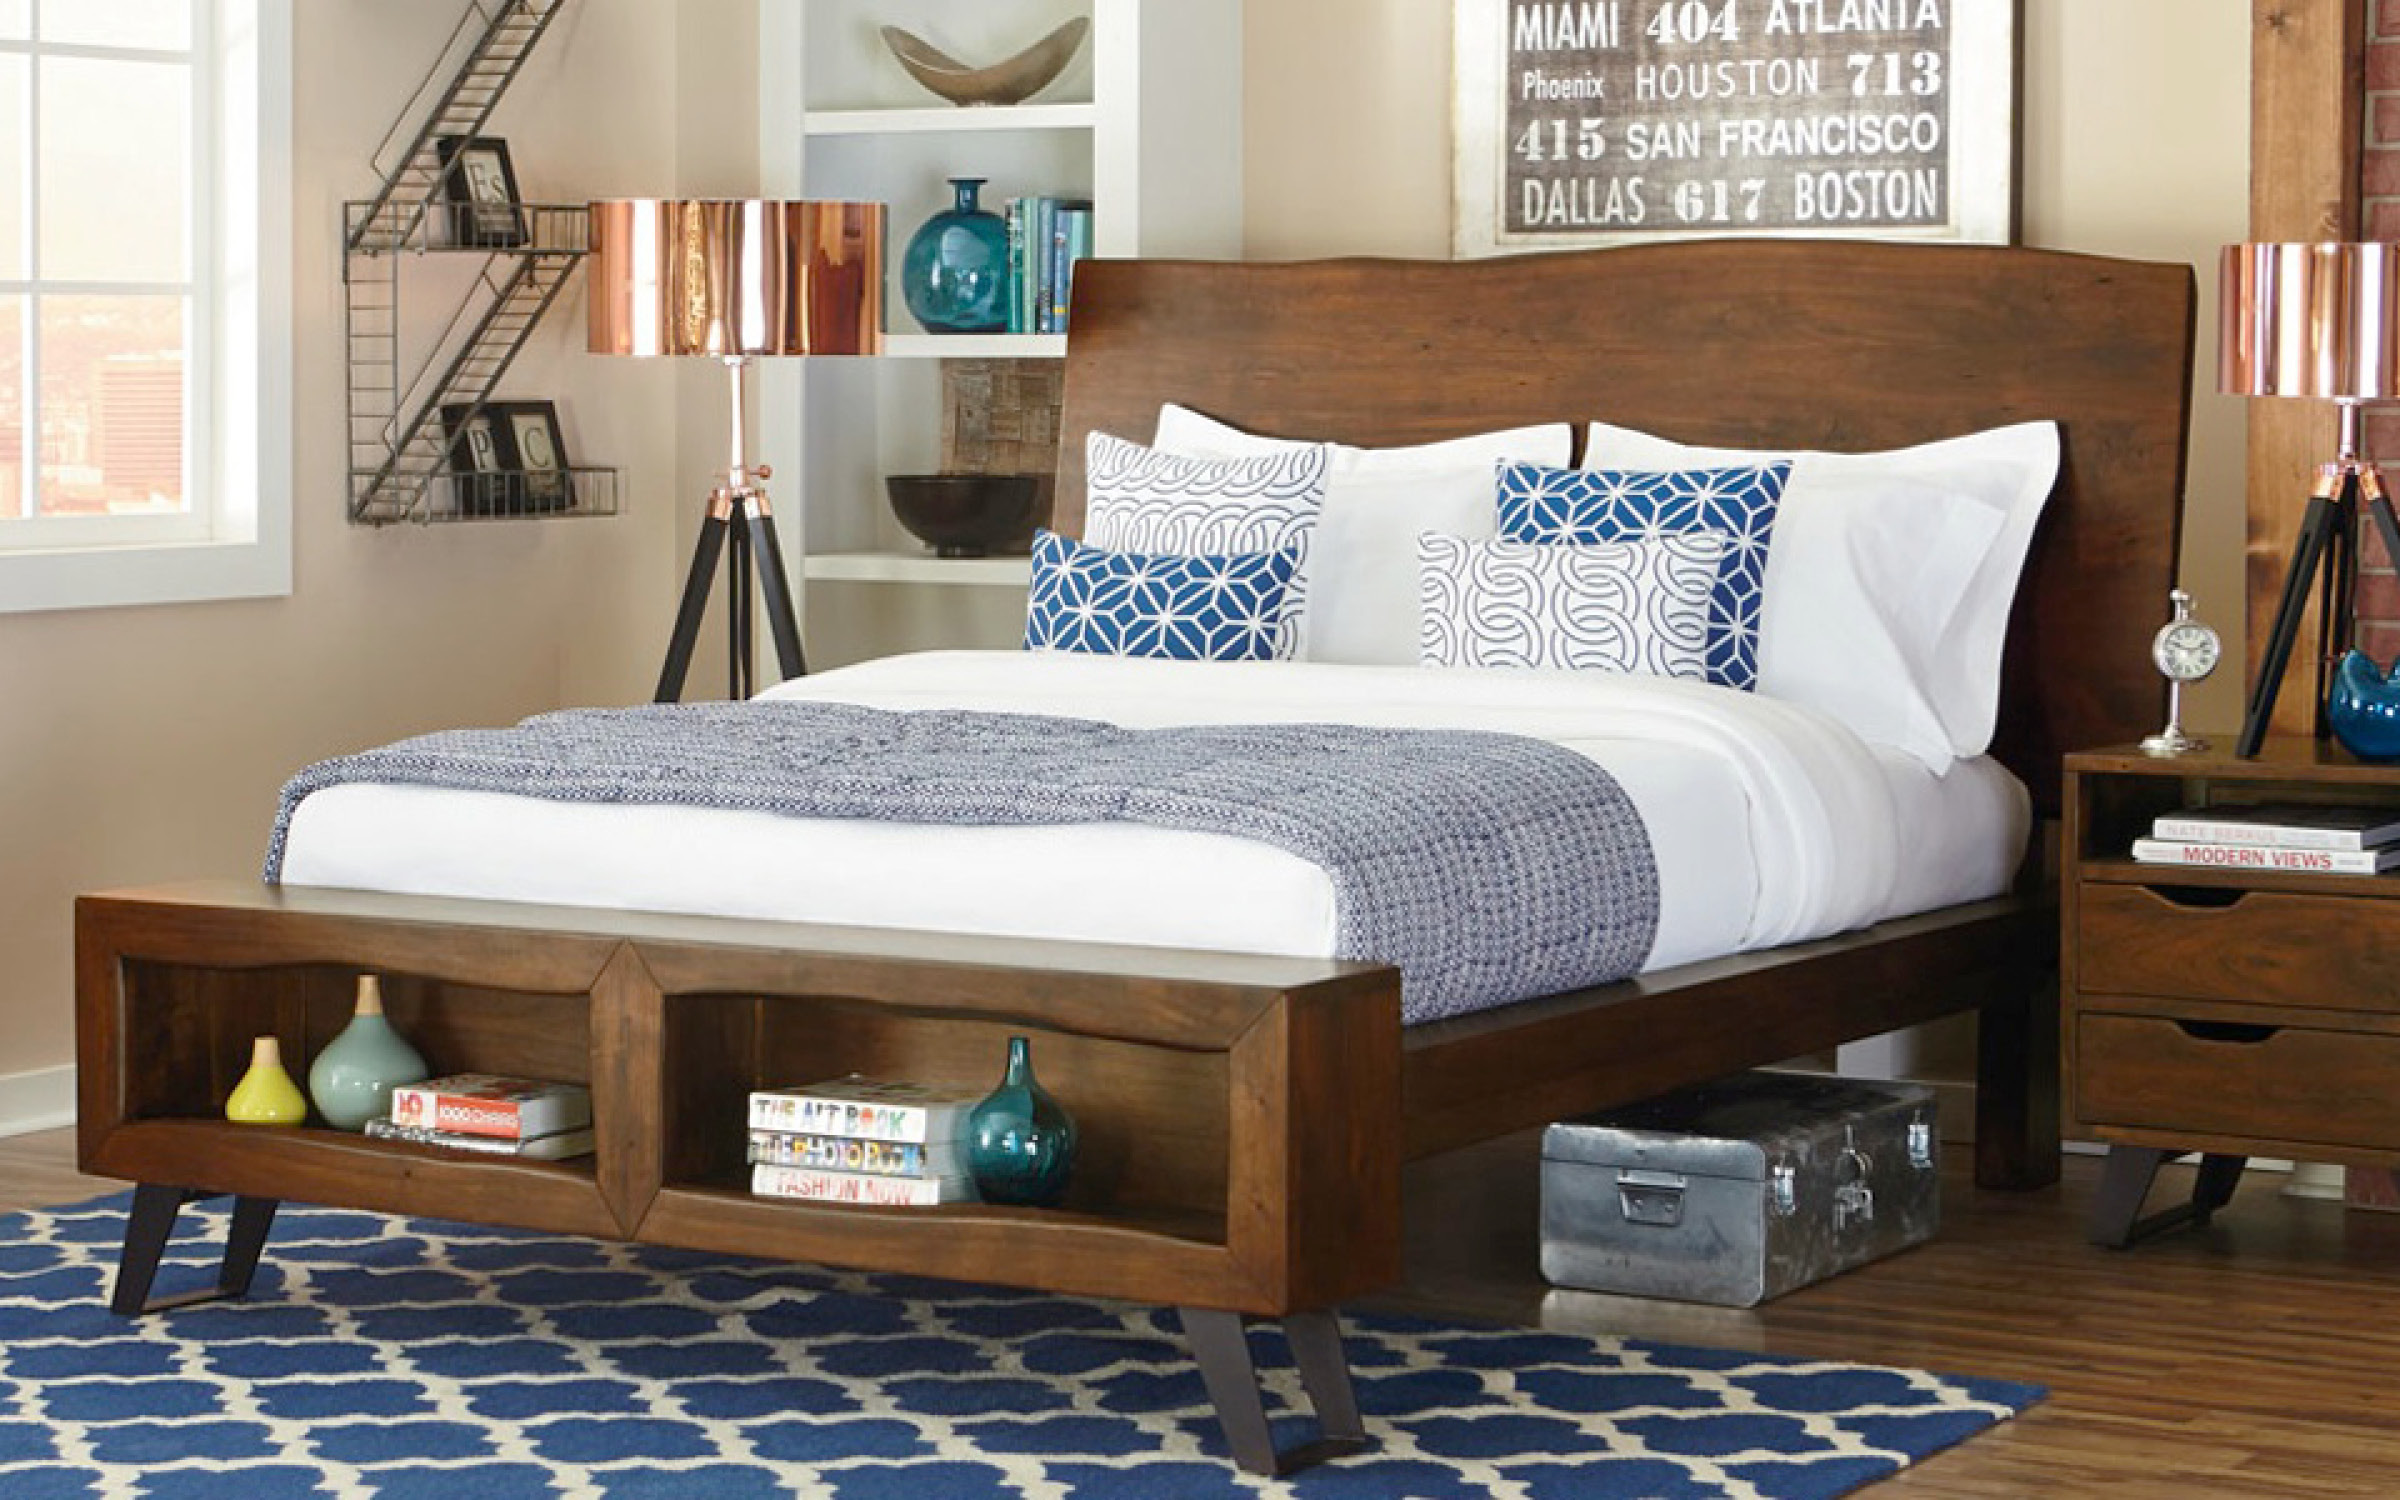 Home Trends & Design Rustic Wood Bedframe | iFurnish, Frisco, CO